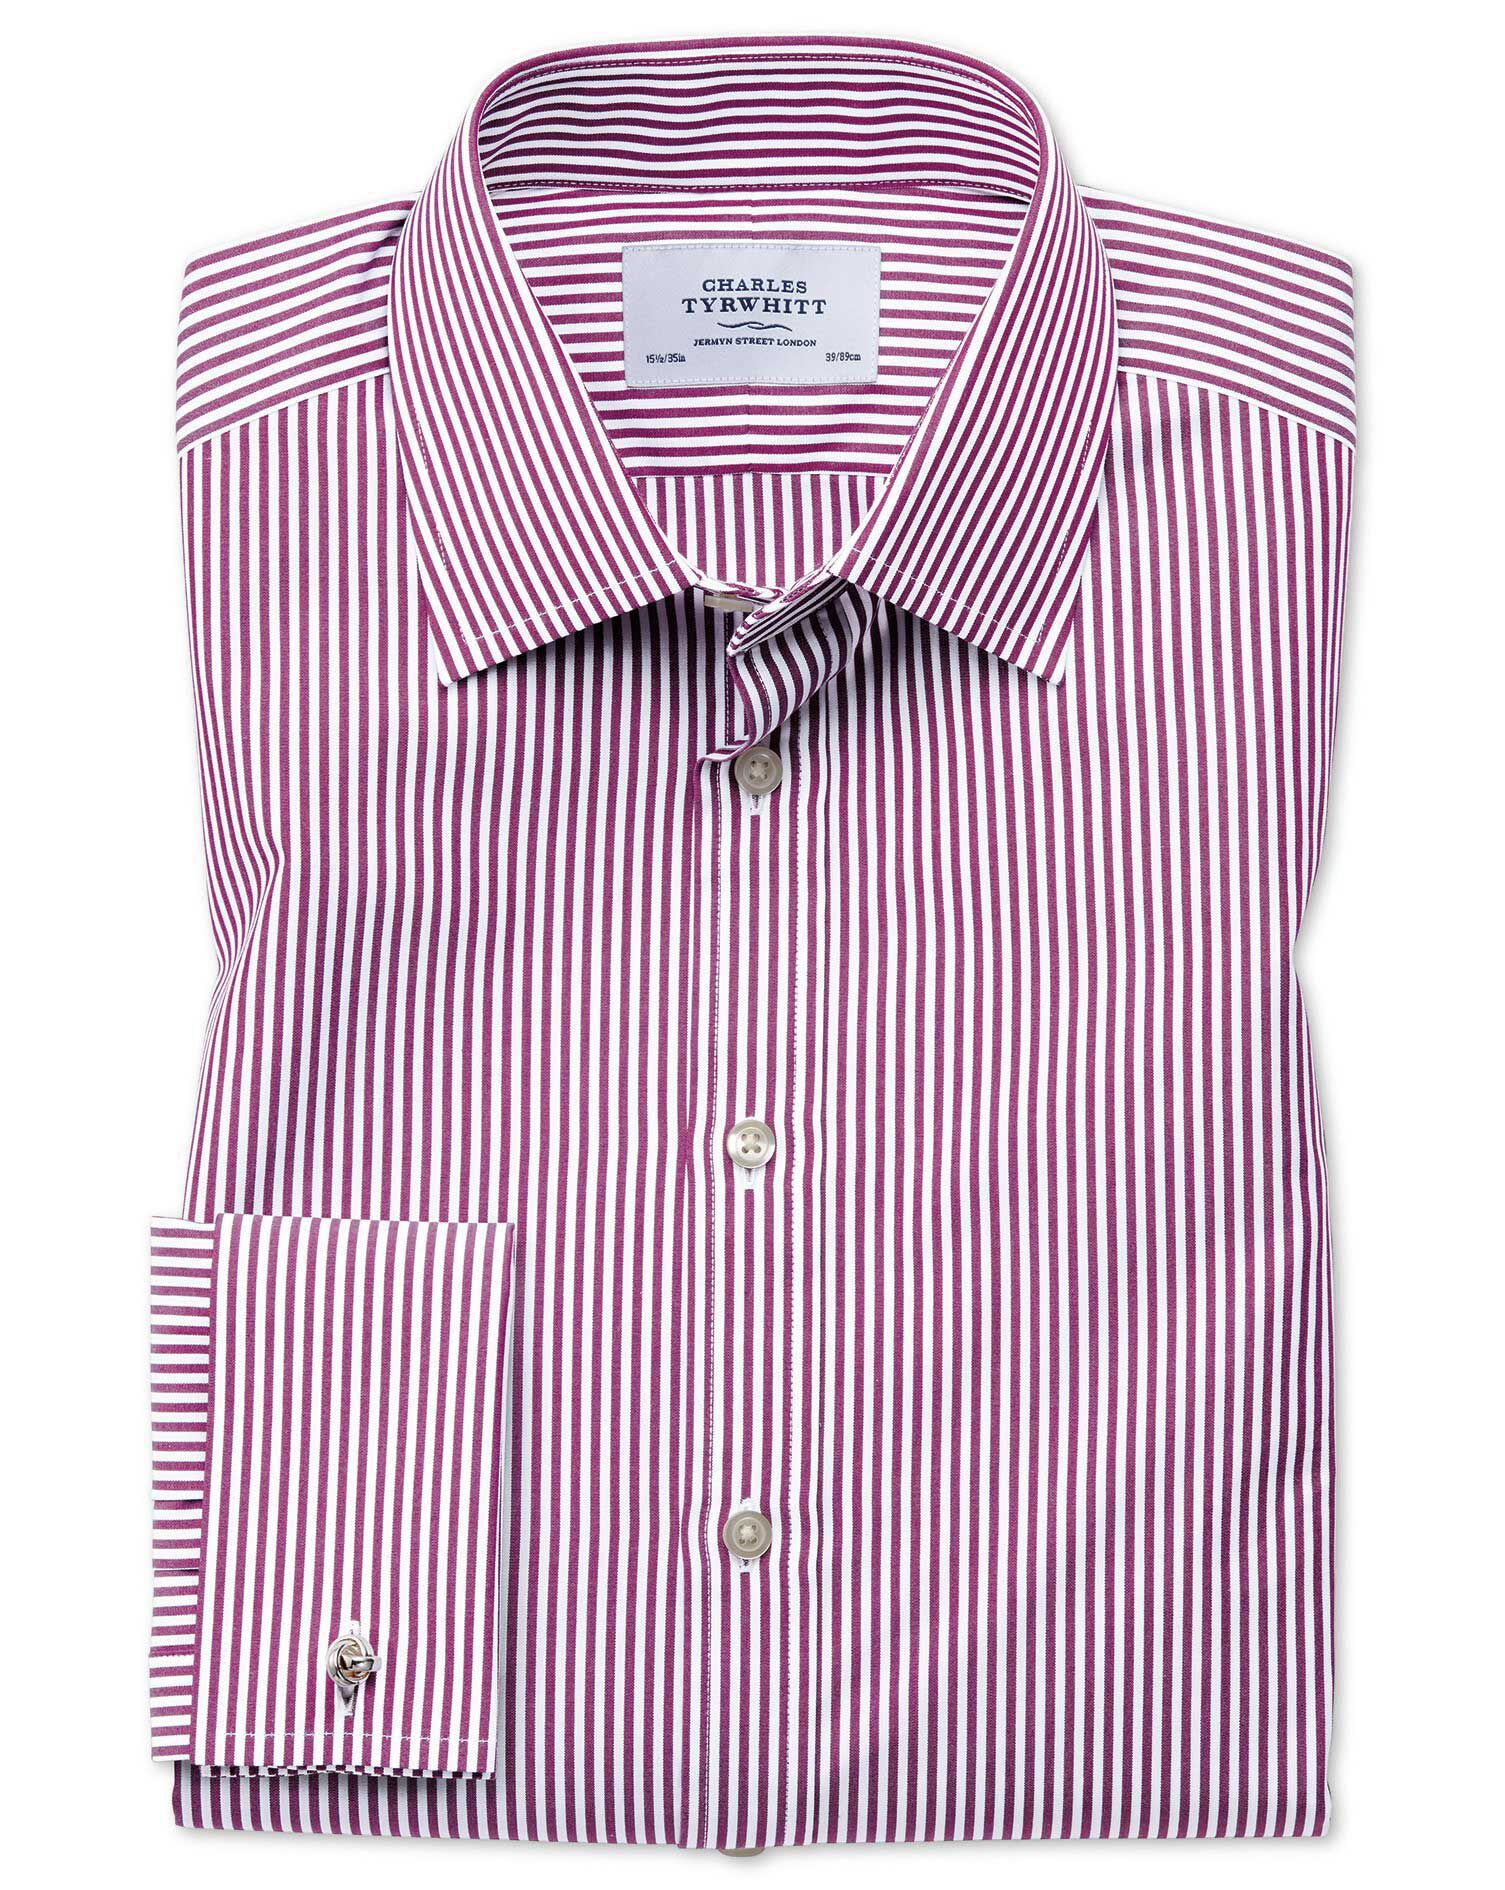 Classic Fit Bengal Stripe Purple Cotton Formal Shirt Single Cuff Size 17.5/36 by Charles Tyrwhitt